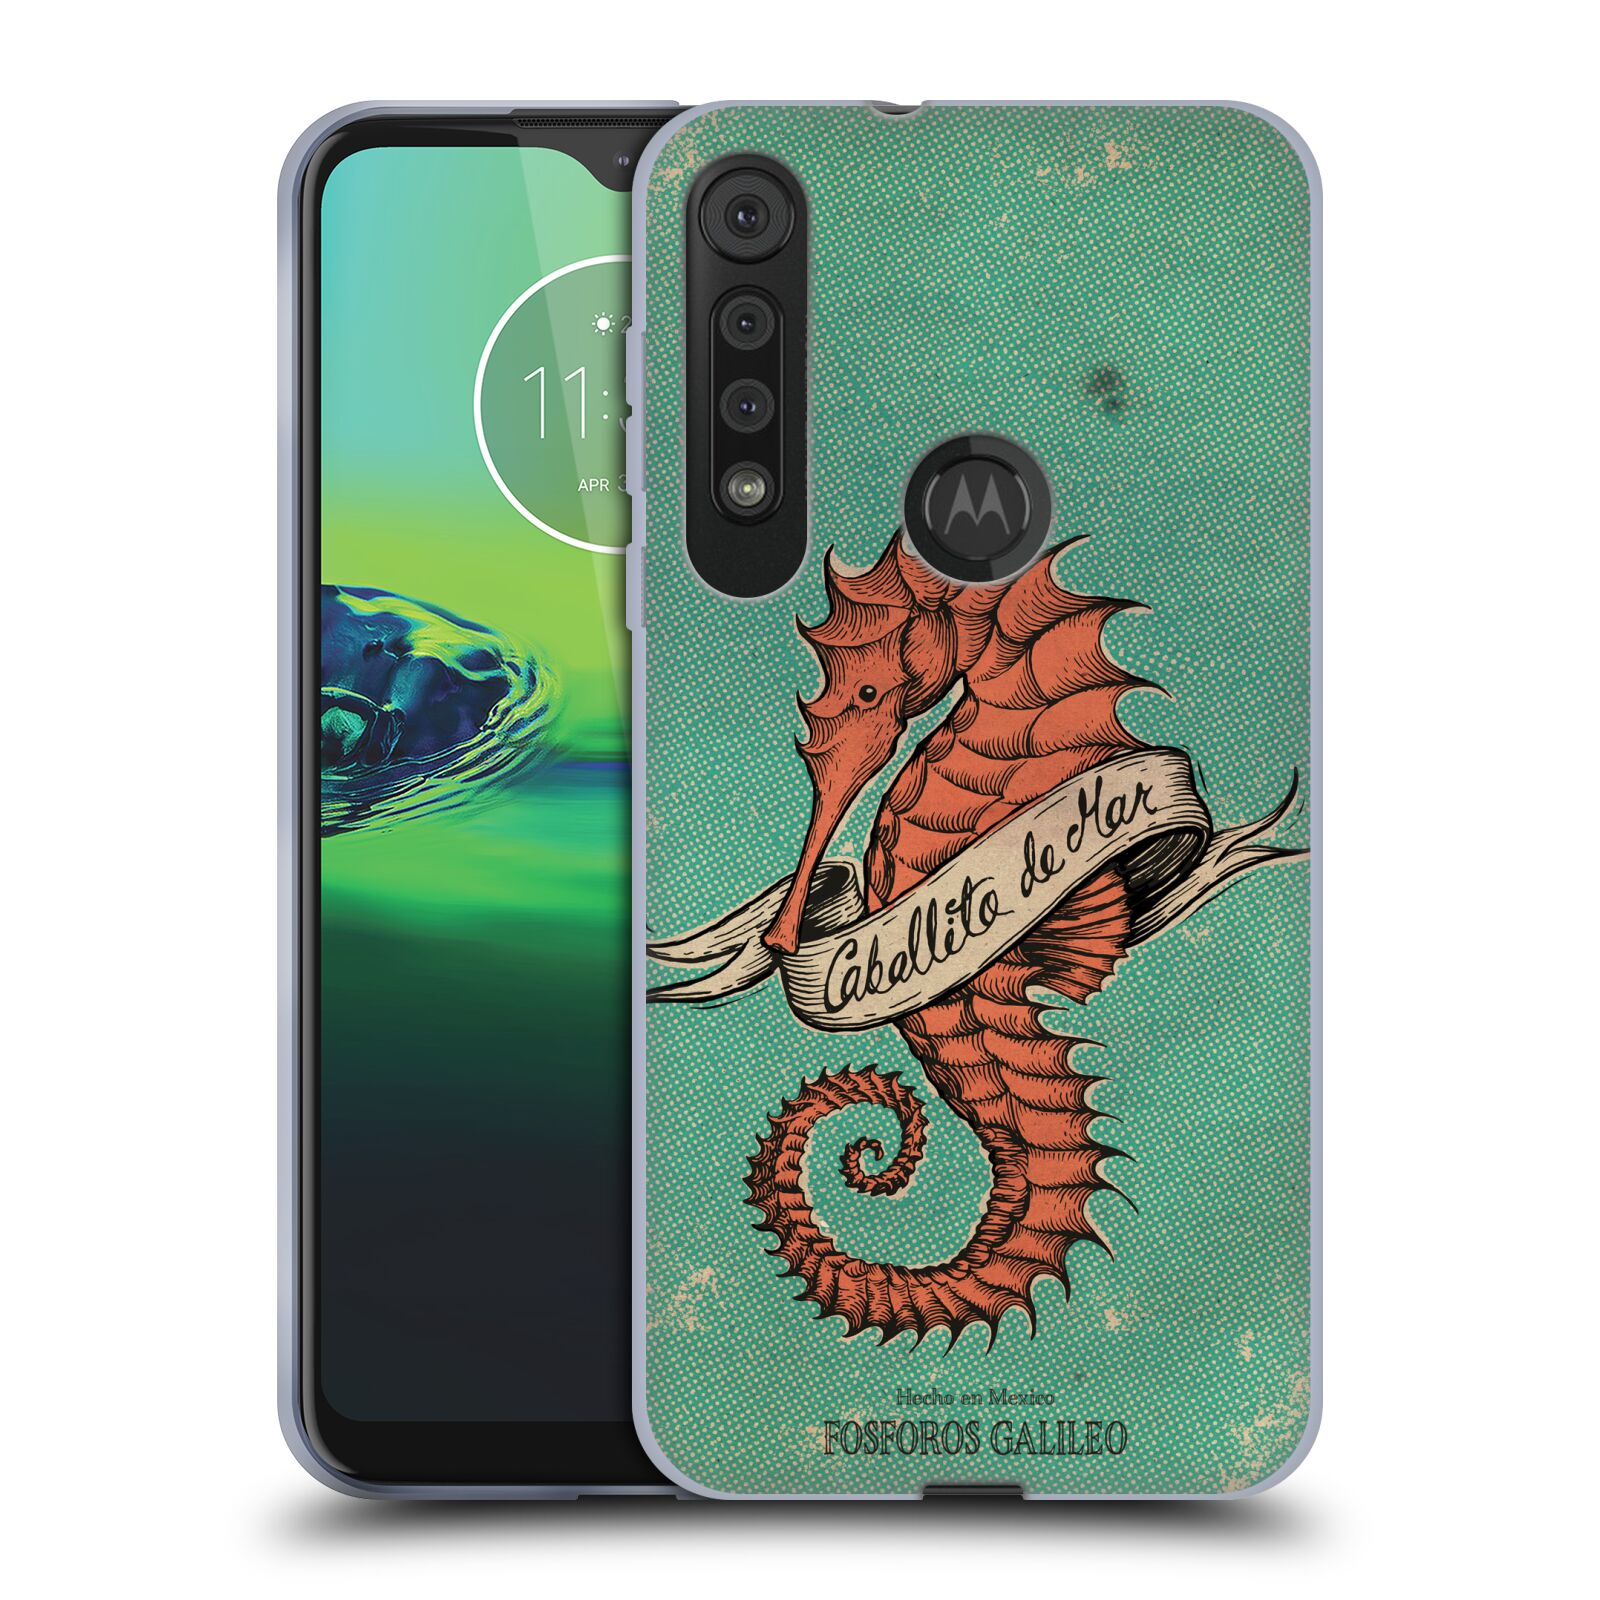 Official Fosforos Galileo Diseños Caballito De Mar Gel Case for Motorola One Macro / Moto G8 Play